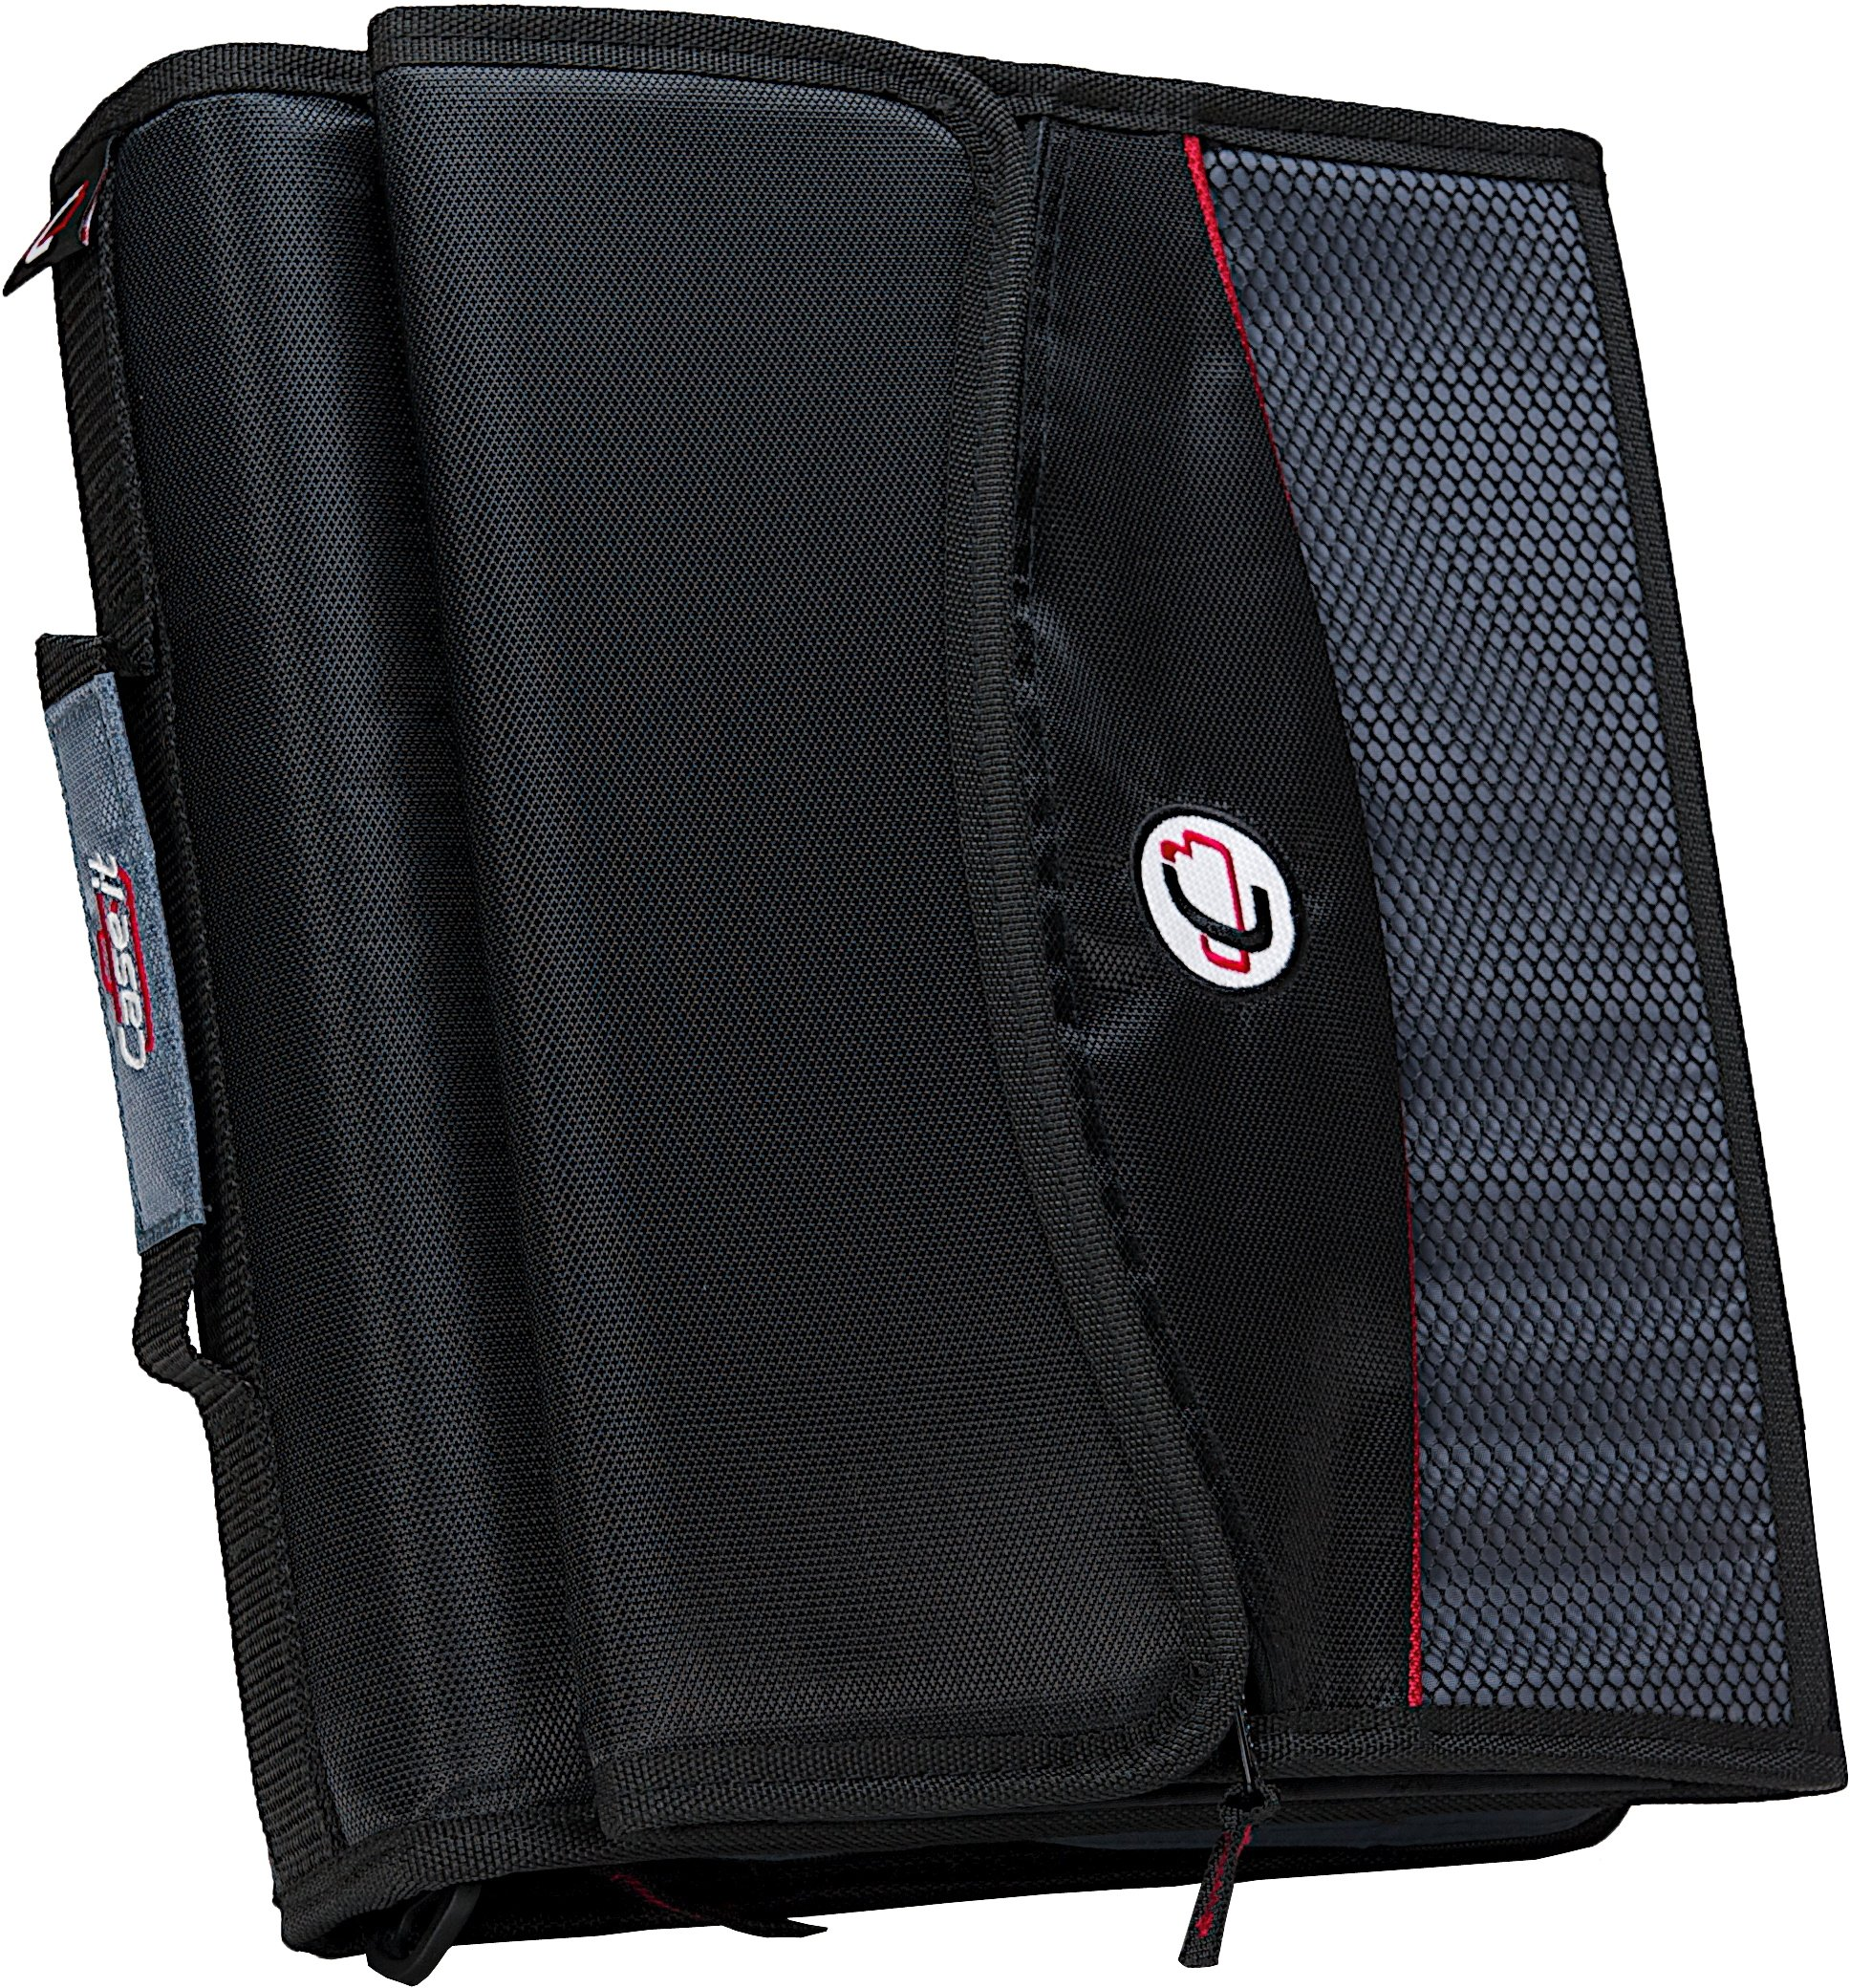 Case-it 2-Inch O-Ring Zipper Binder with Removable Tab File, Black, D-901-BLK